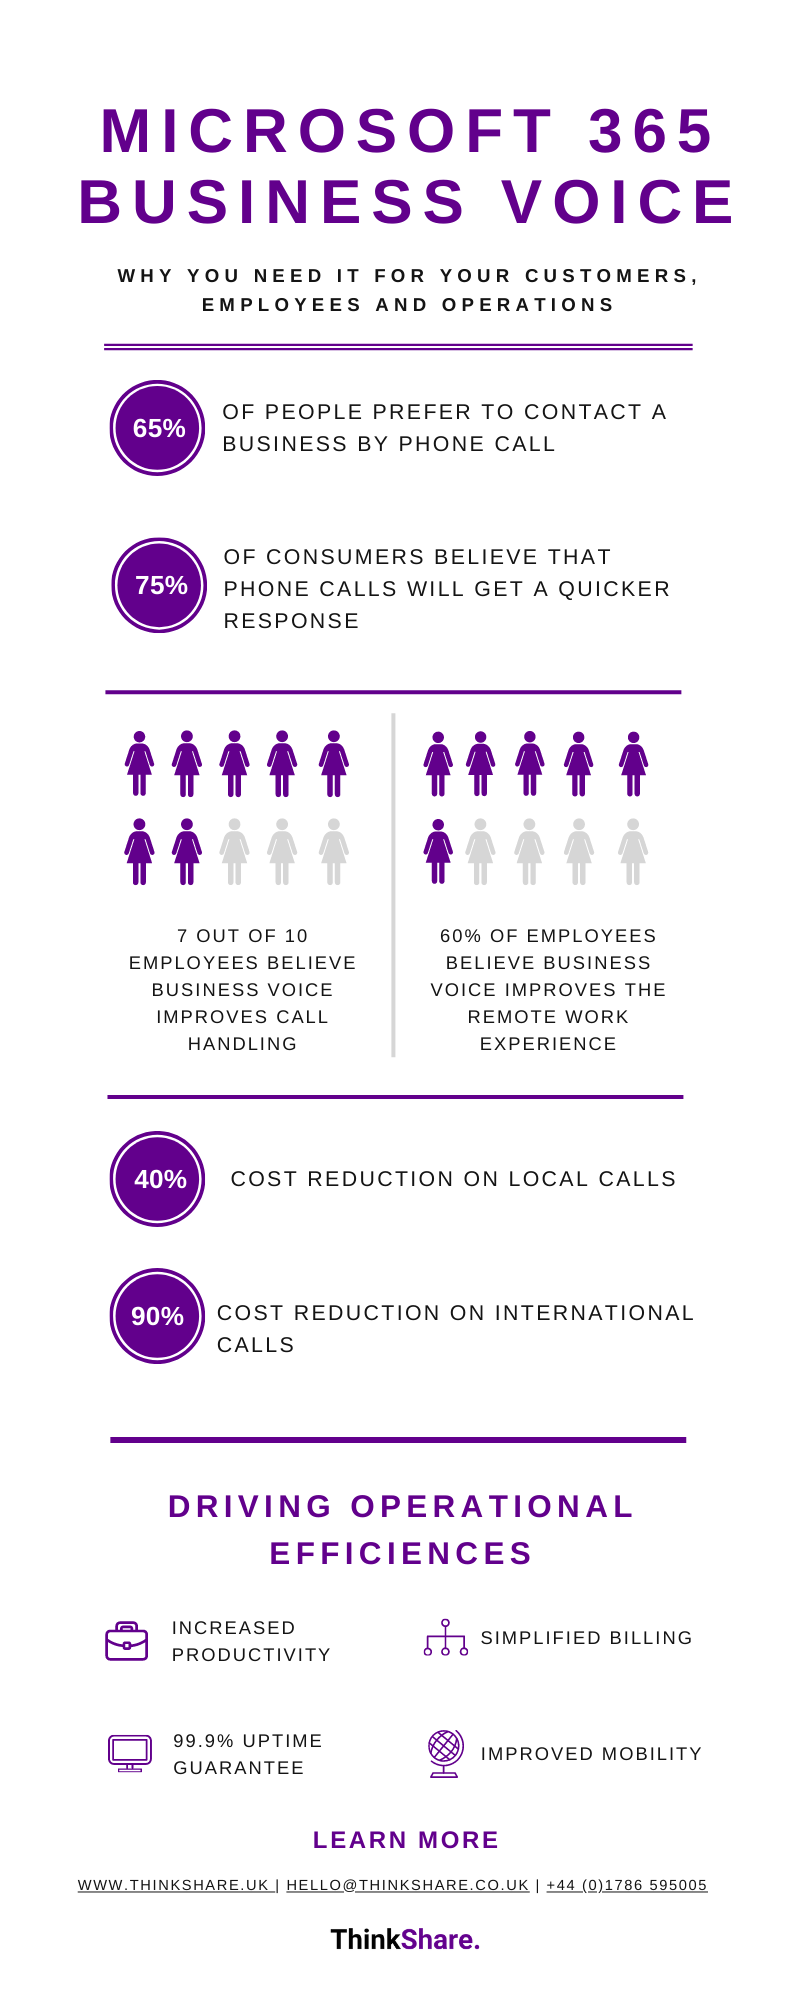 Why your business needs Microsoft 365 Business Voice